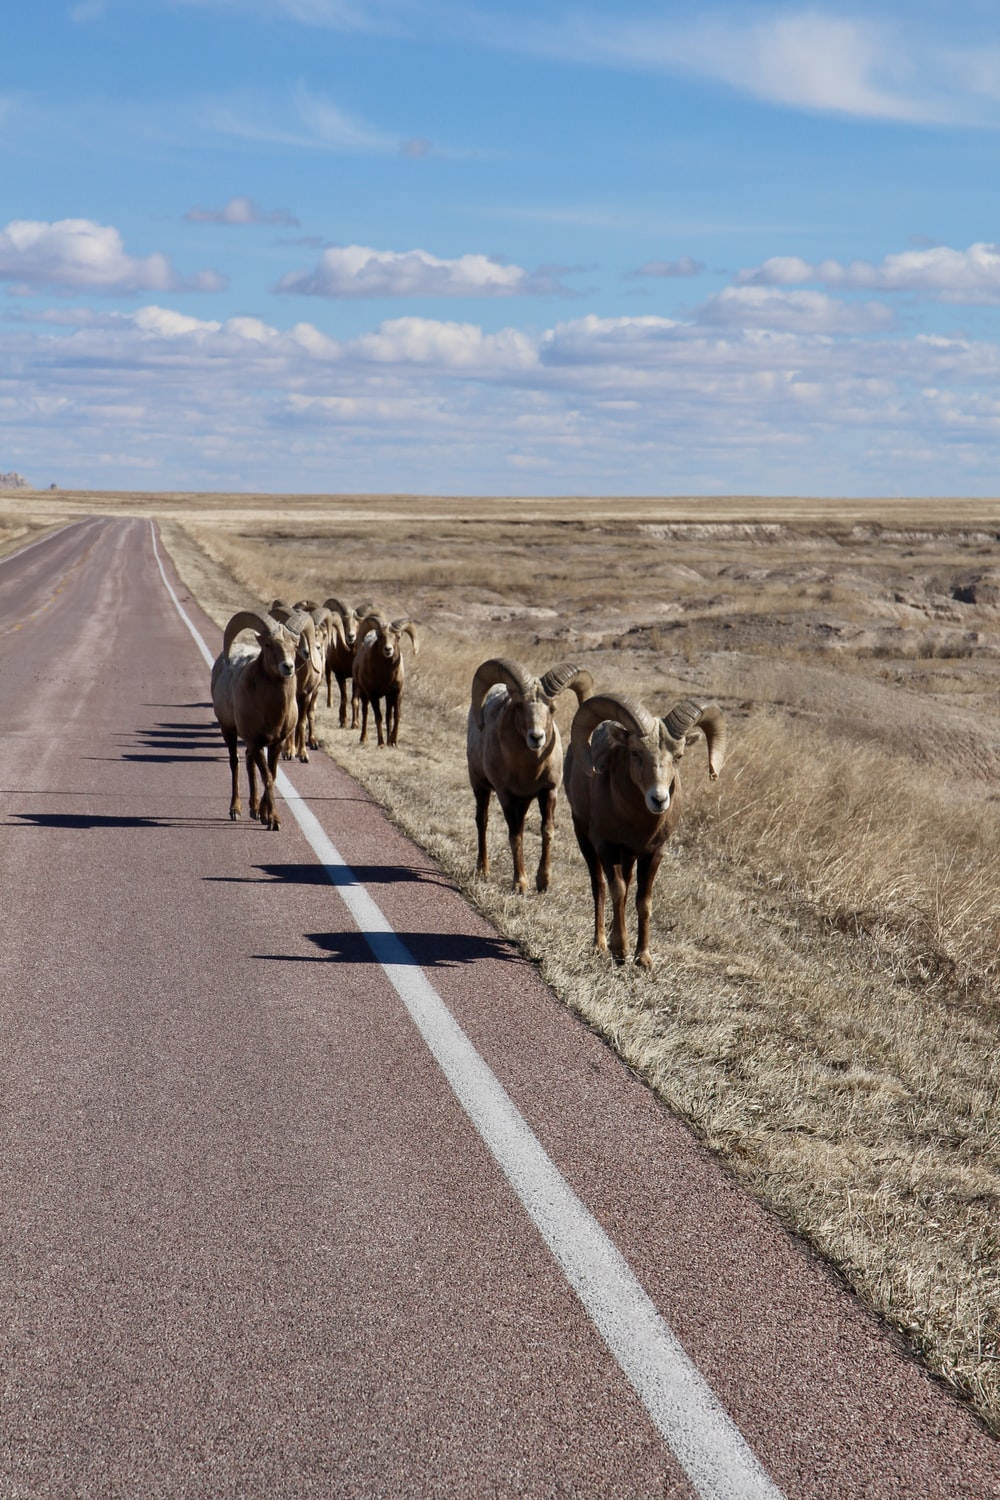 herd of sheep on road during daytime